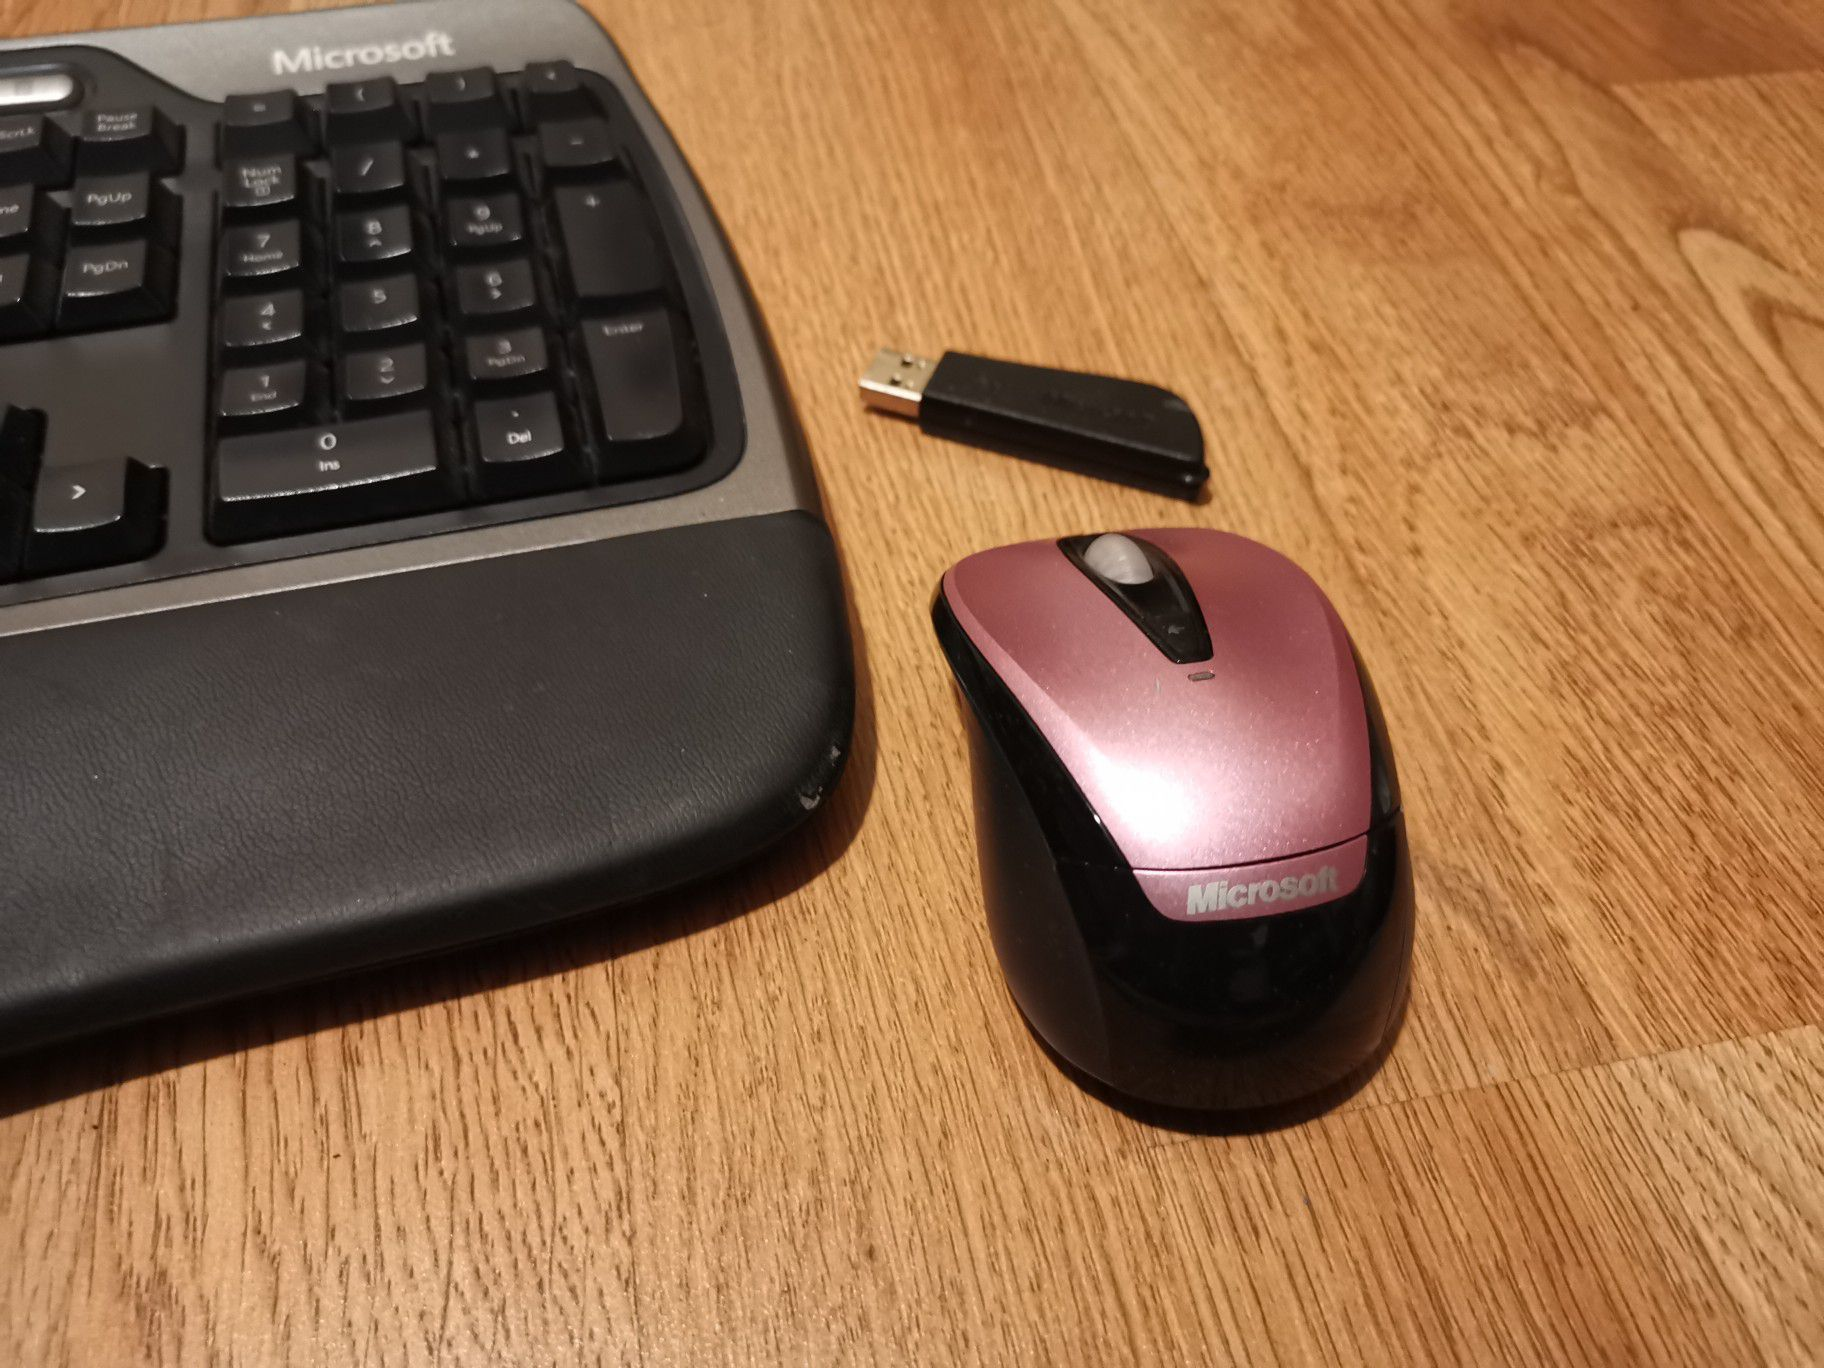 Keyboard Ergonómic and wireless Mouse